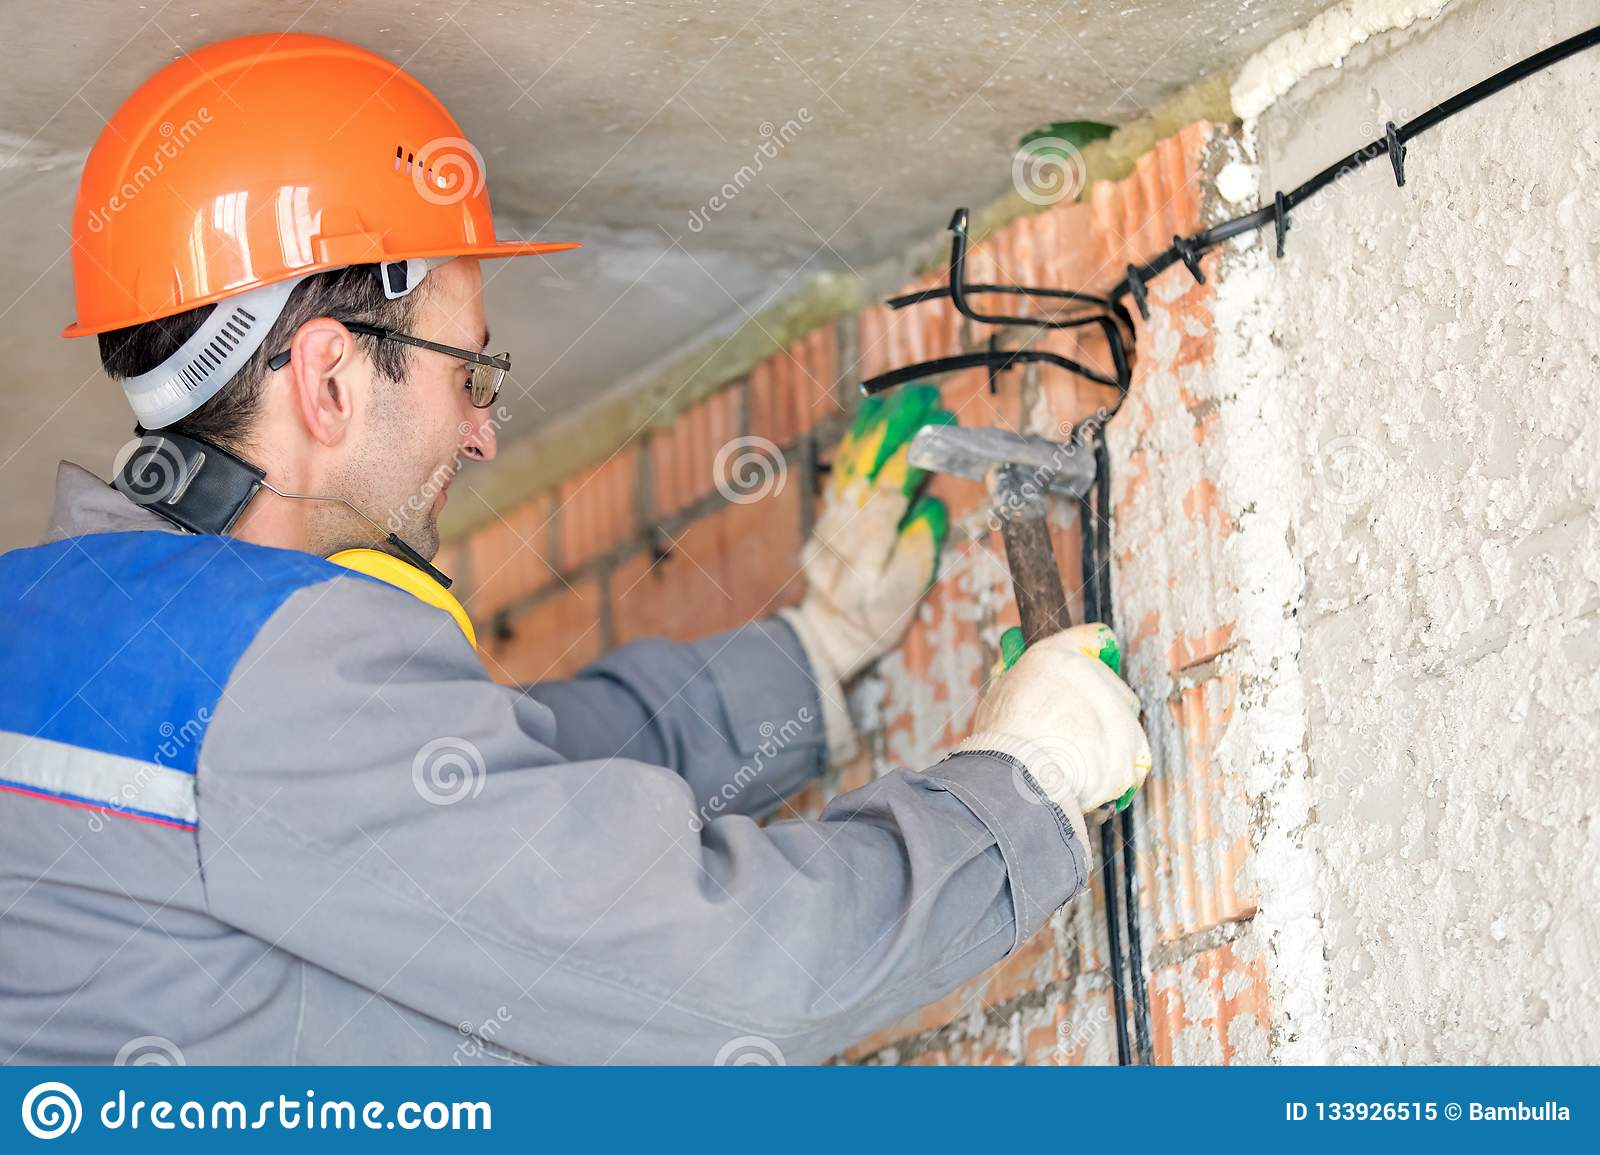 hight resolution of electrician man construction worker installing fuse box electrical cable at house wall